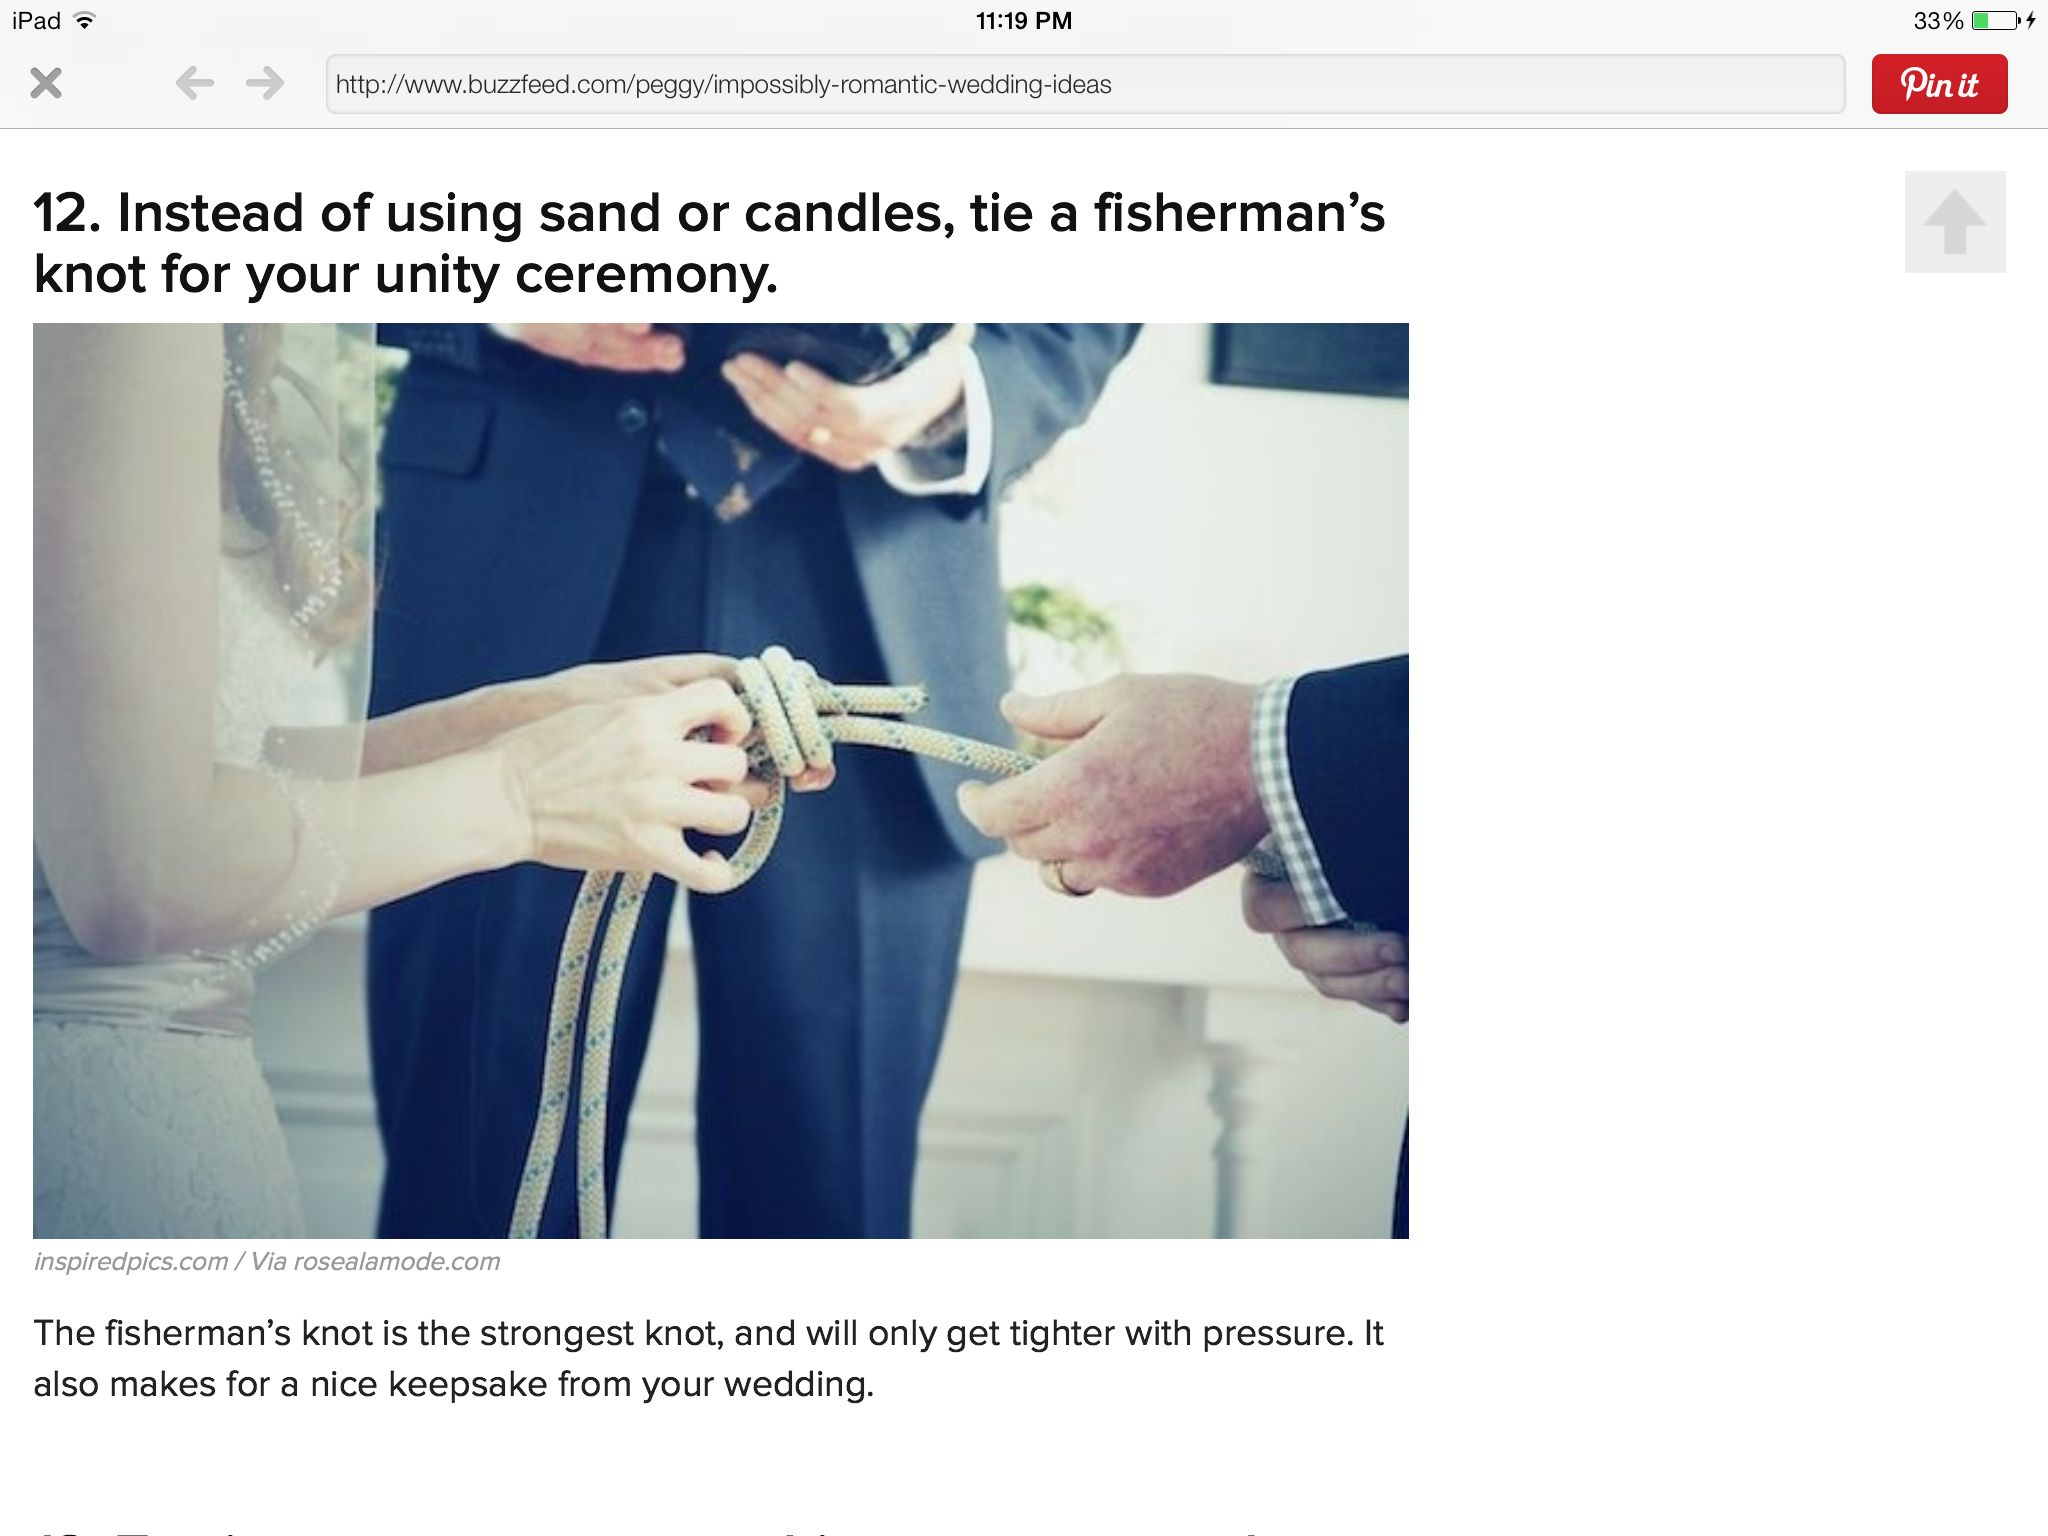 Tie a Fisherman's knot during the ceremony. It is the strongest knot & it only gets stronger with pressure. Makes a nice wedding keepsake too